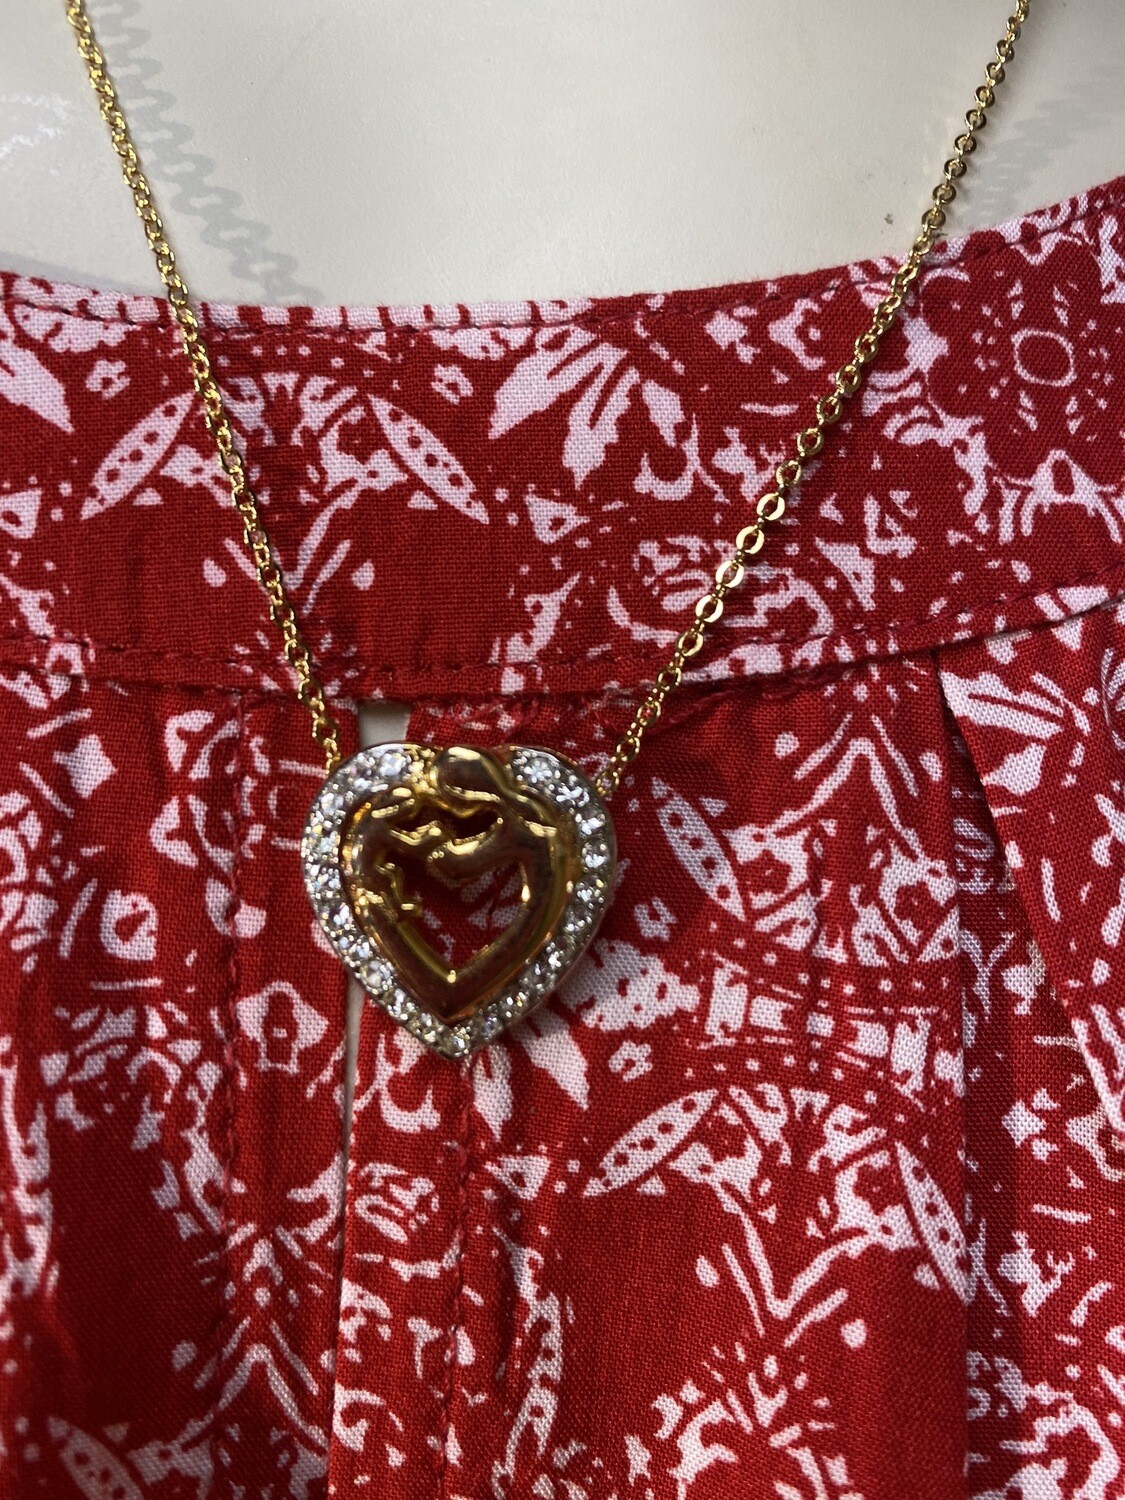 DK Mothers Arms Crystal Heart. Vintage Gold Filled Necklace